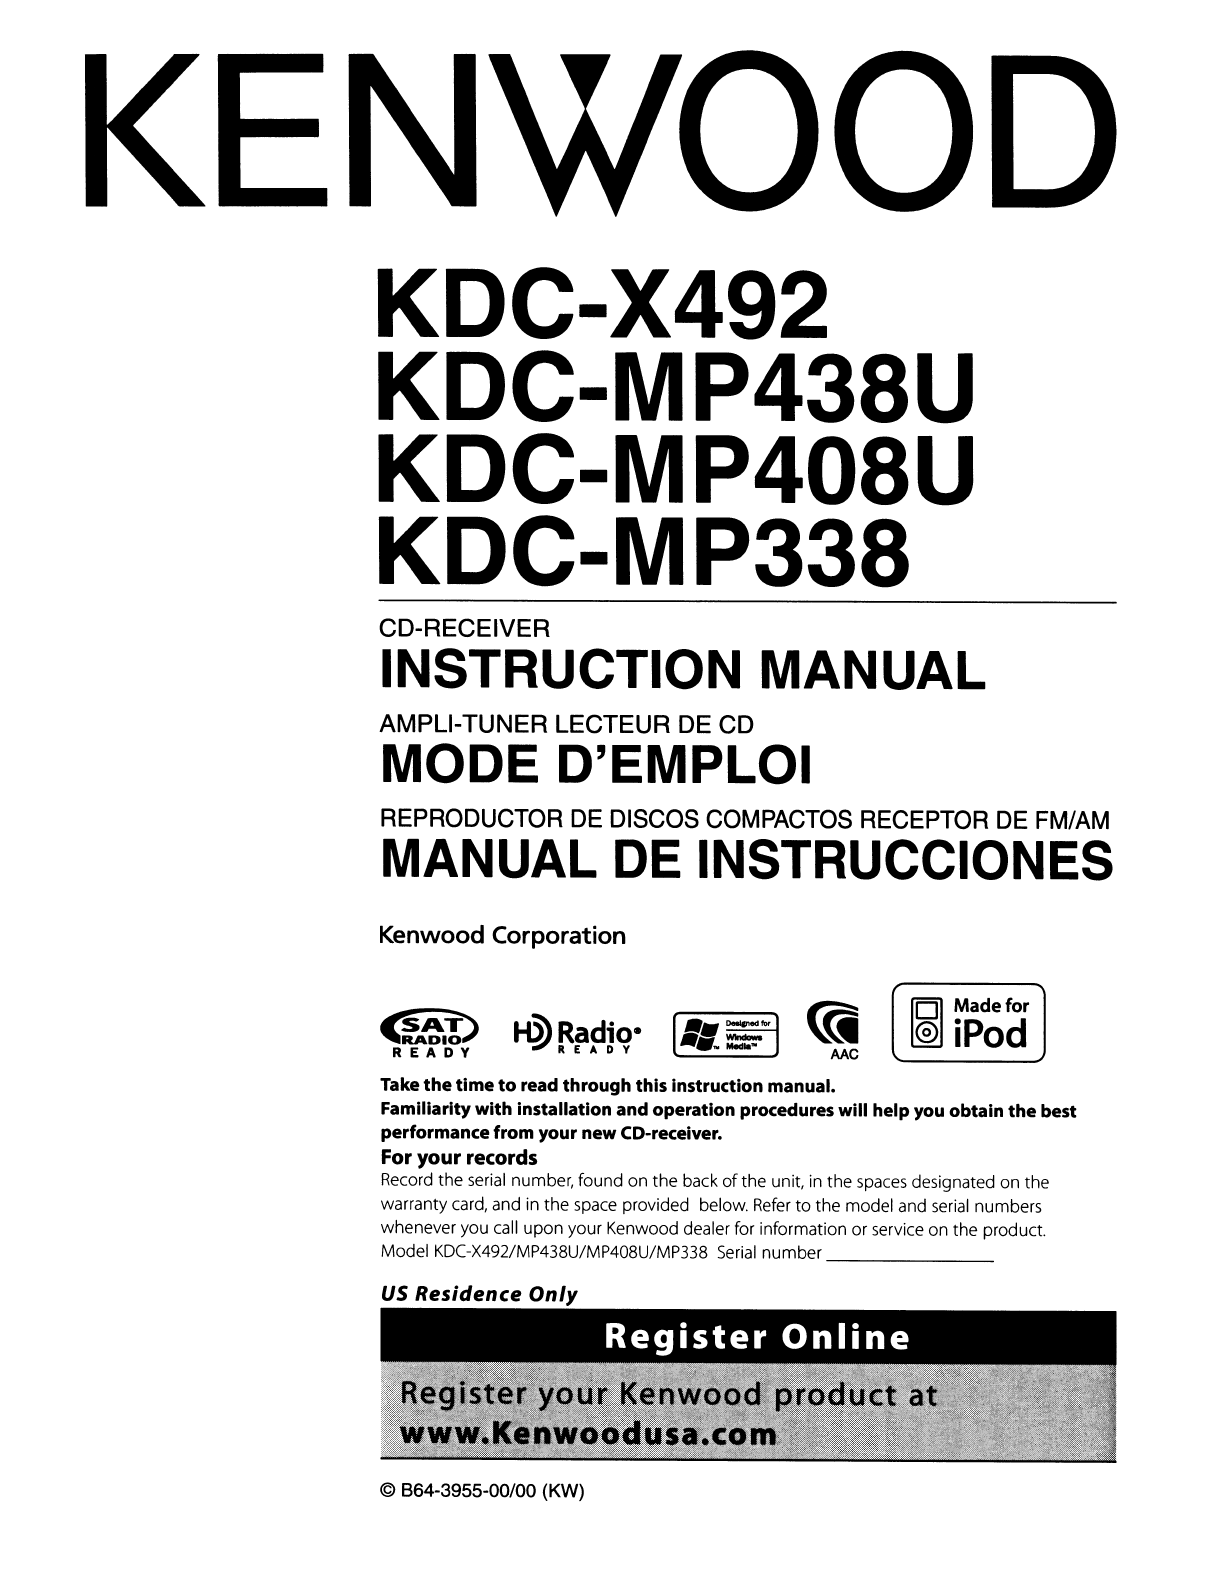 e1d8020b e50b e454 55a5 f7eff258ba43 bg1 kenwood cd player kdc mp338 user guide manualsonline com kenwood kdc-x492 wiring diagram at eliteediting.co